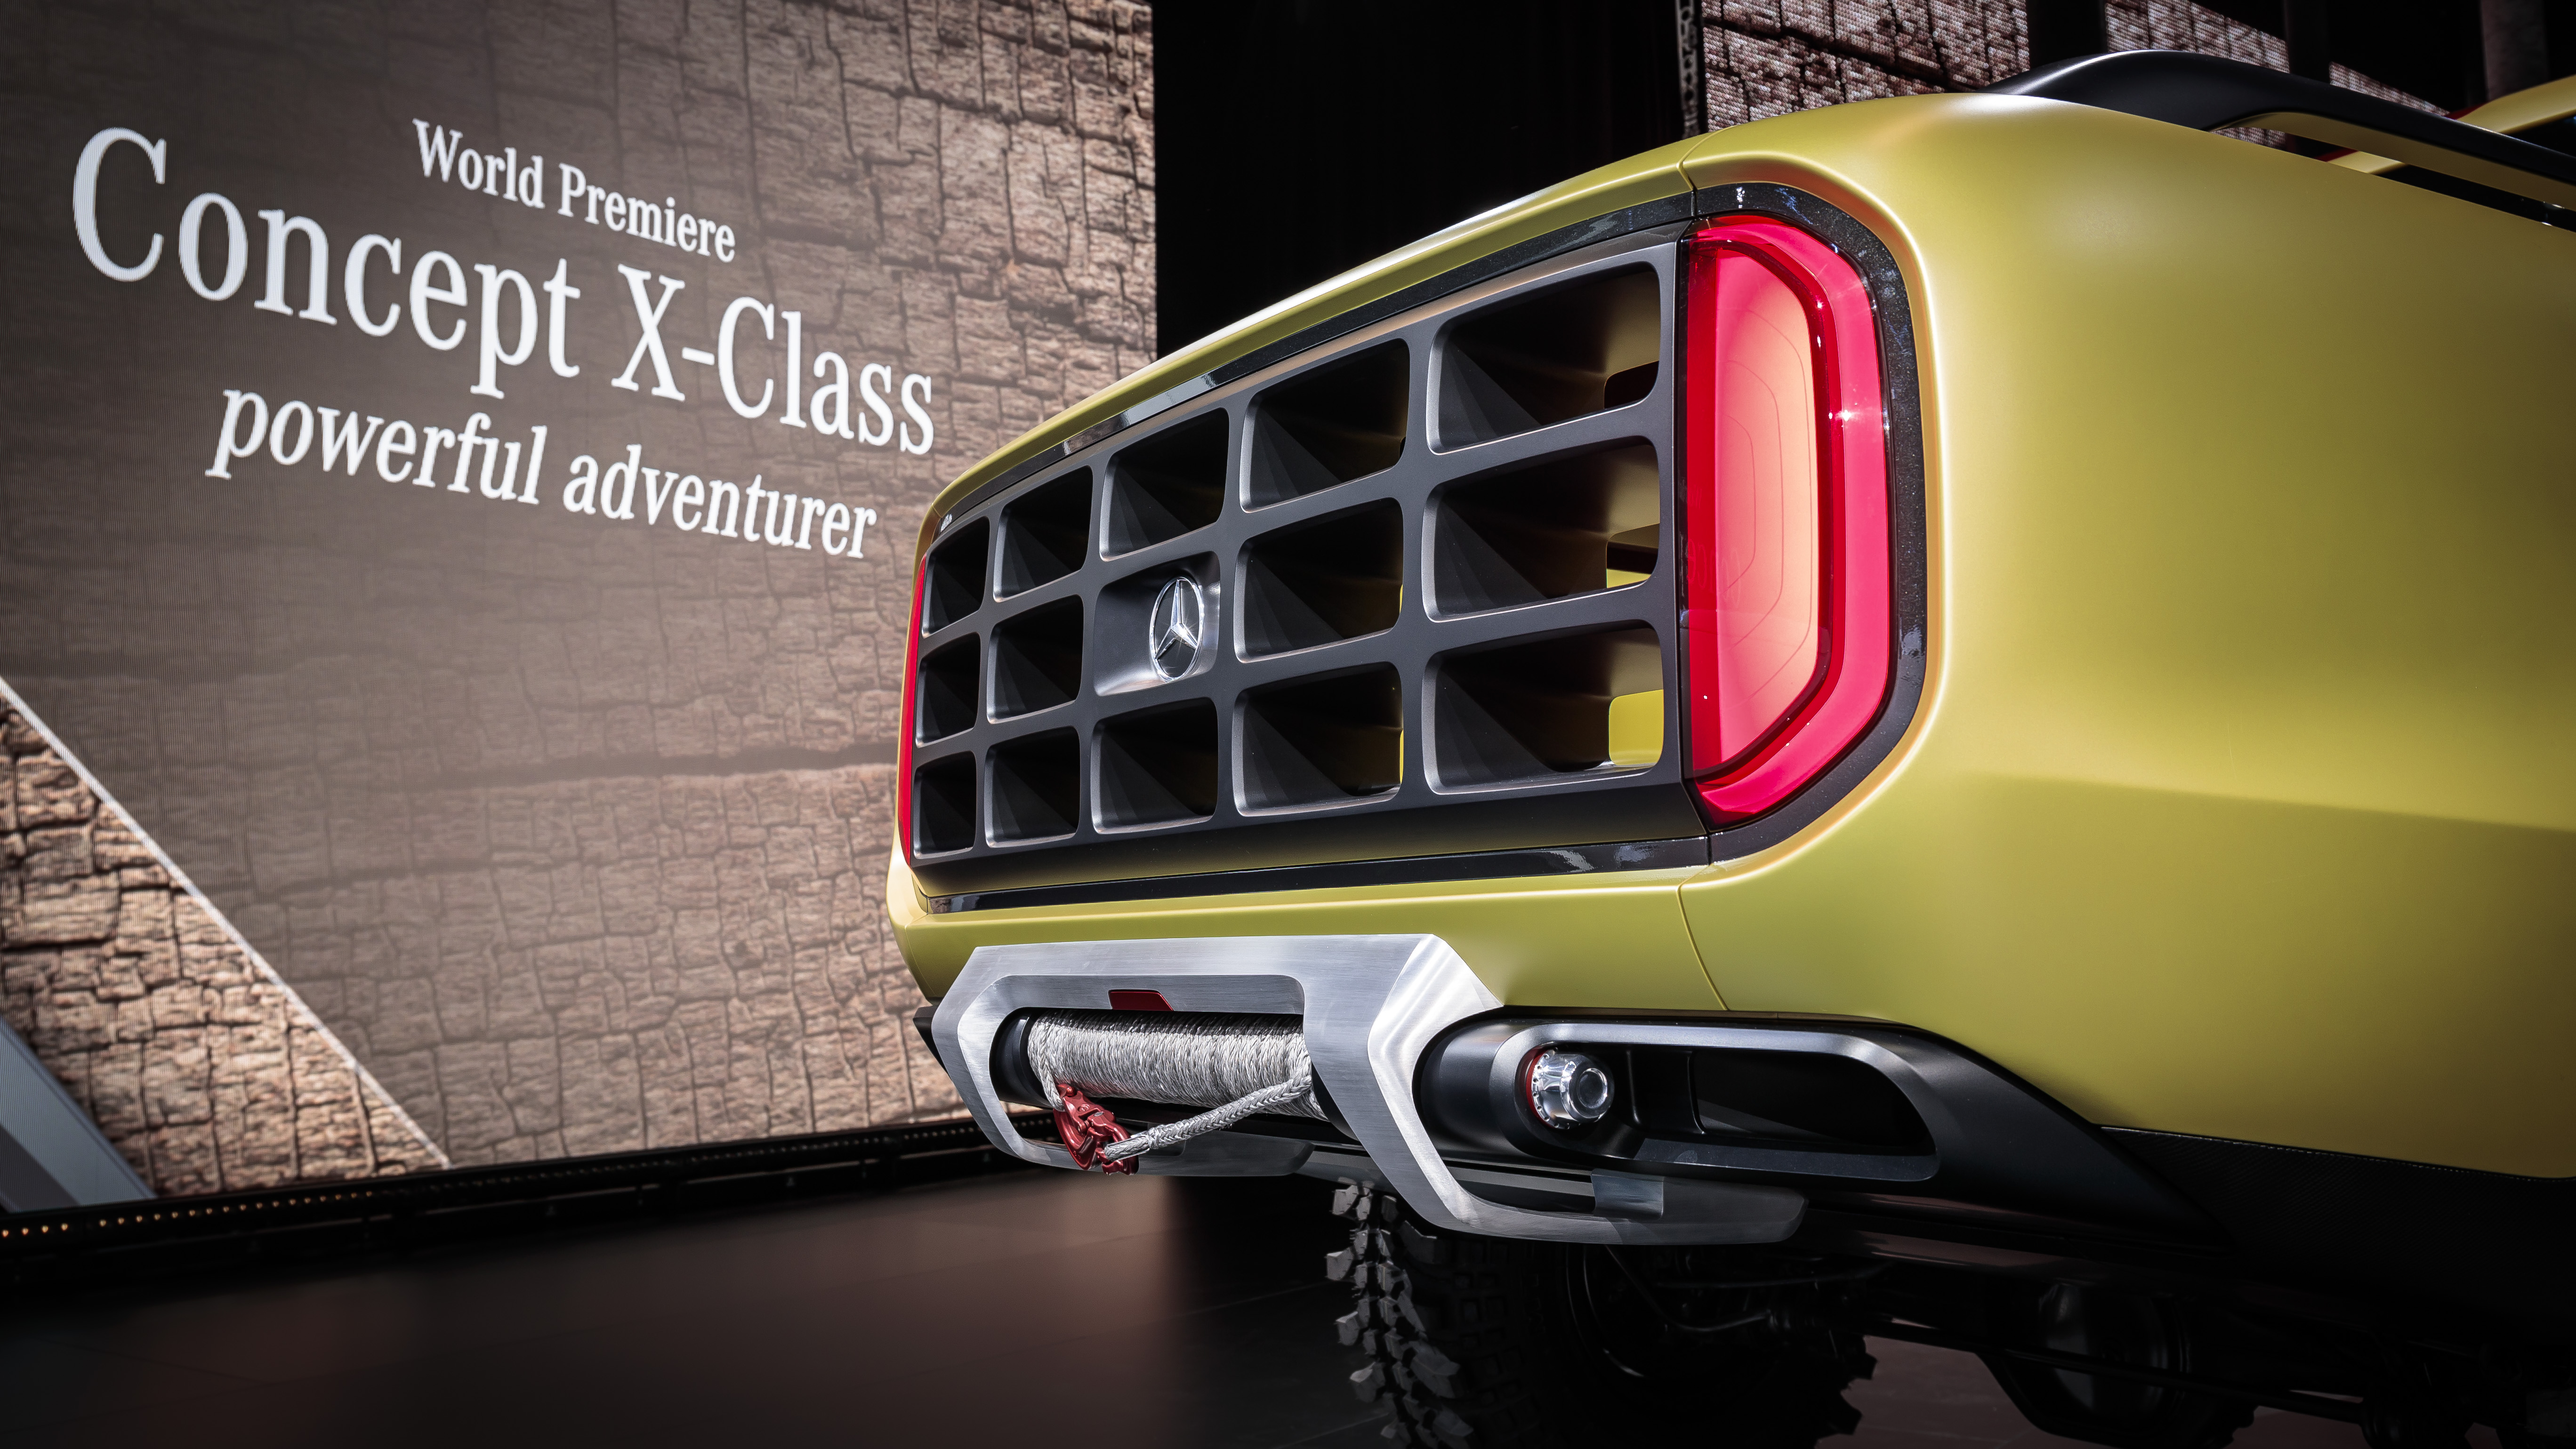 Officieel: de Mercedes Concept X-CLASS [updated] - Autoblog.nl